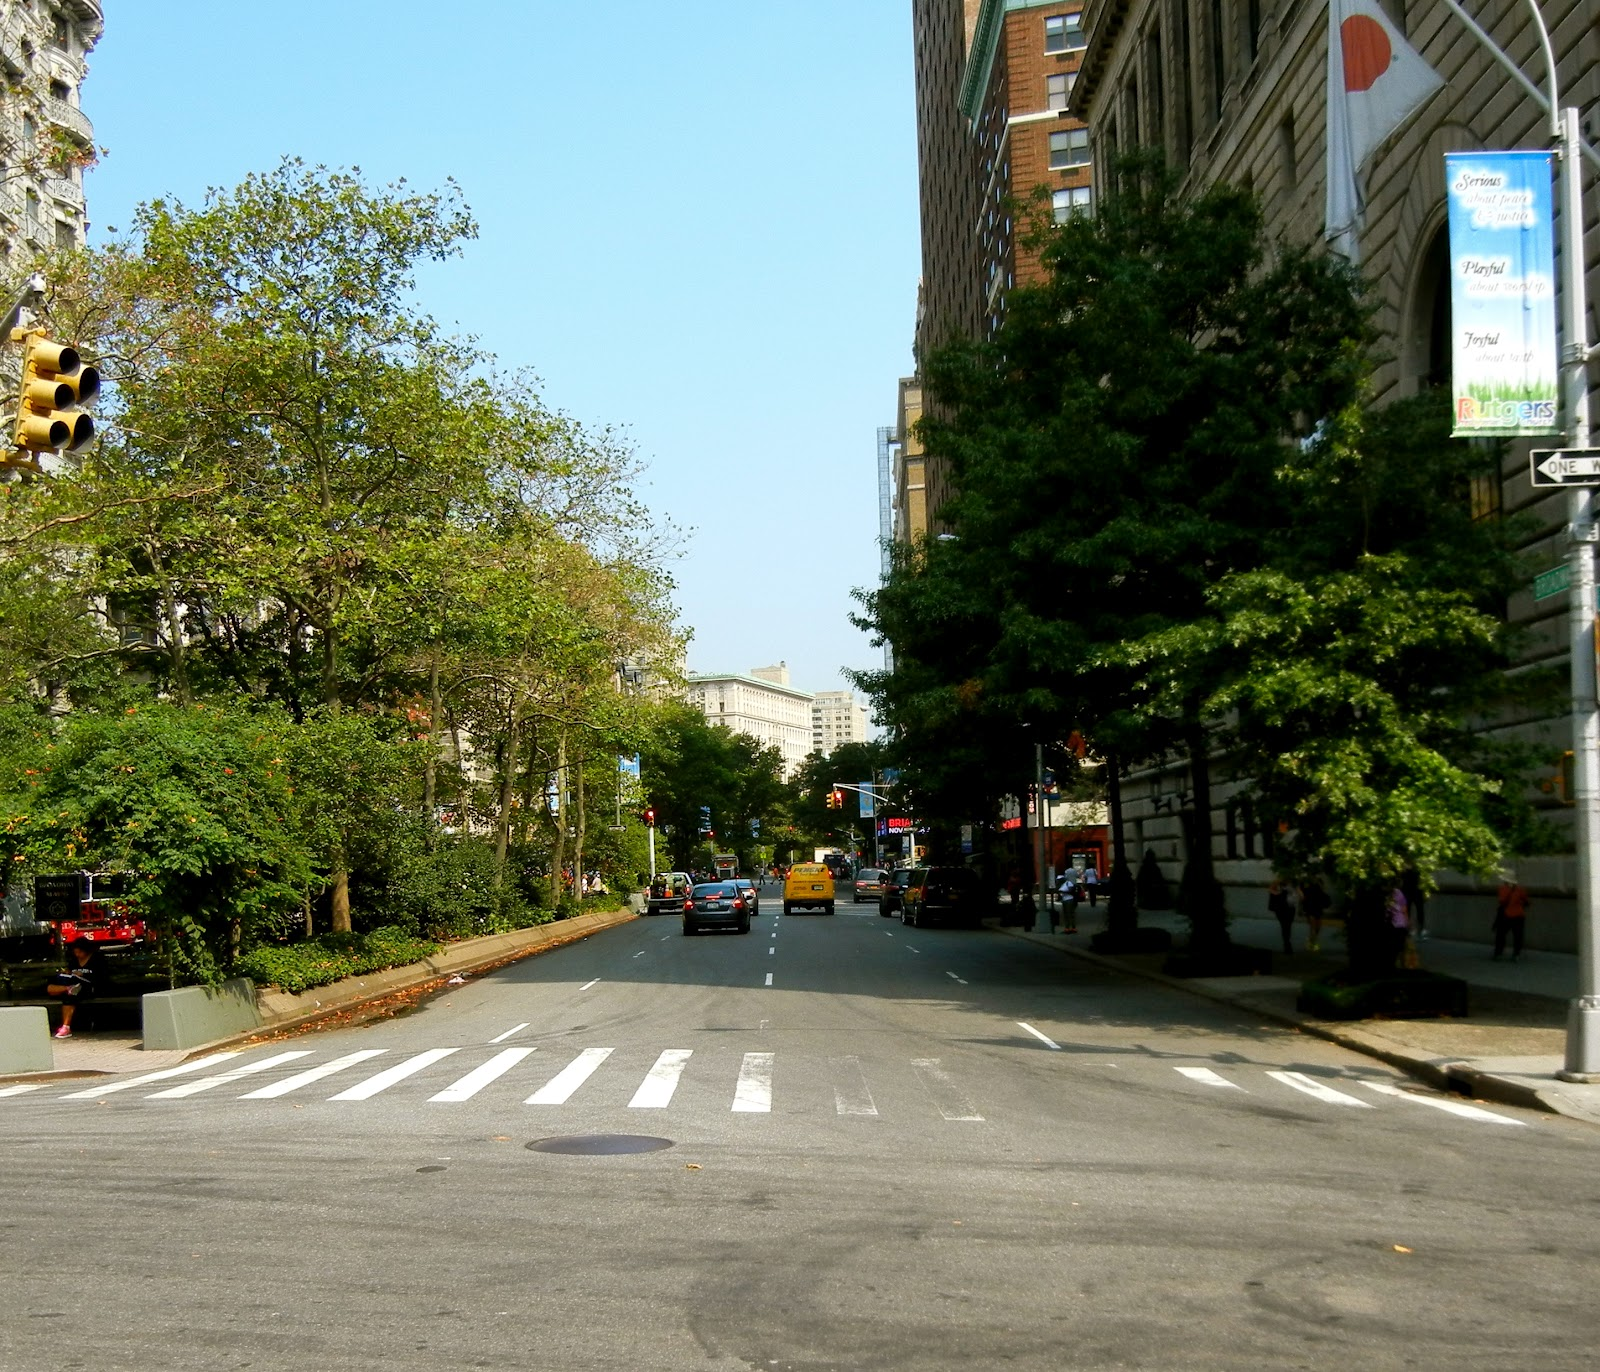 few shots of our daughter's UWS neighborhood as we headed out